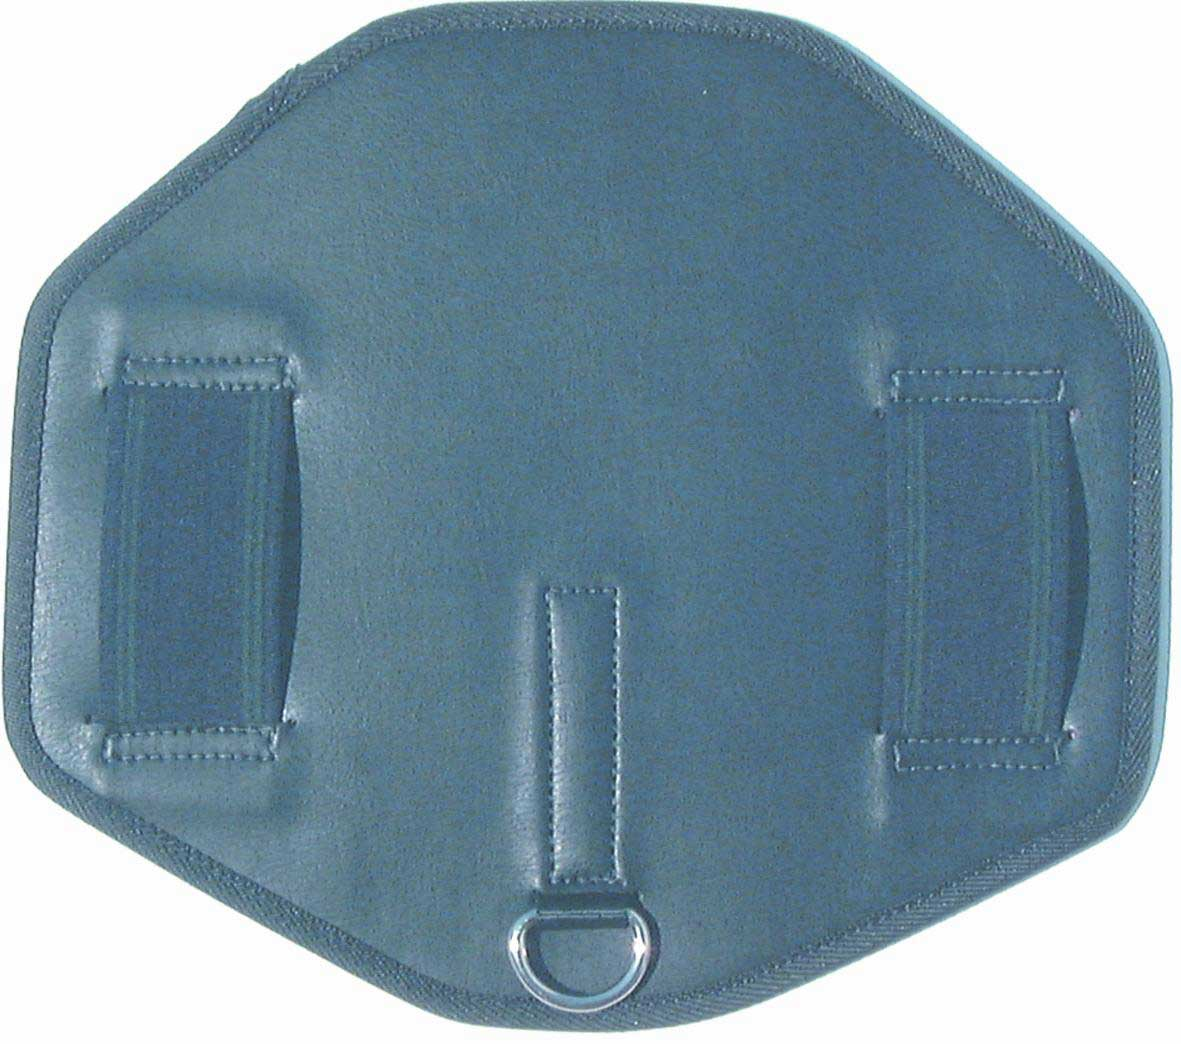 Chevalier Stud Guard Attachment